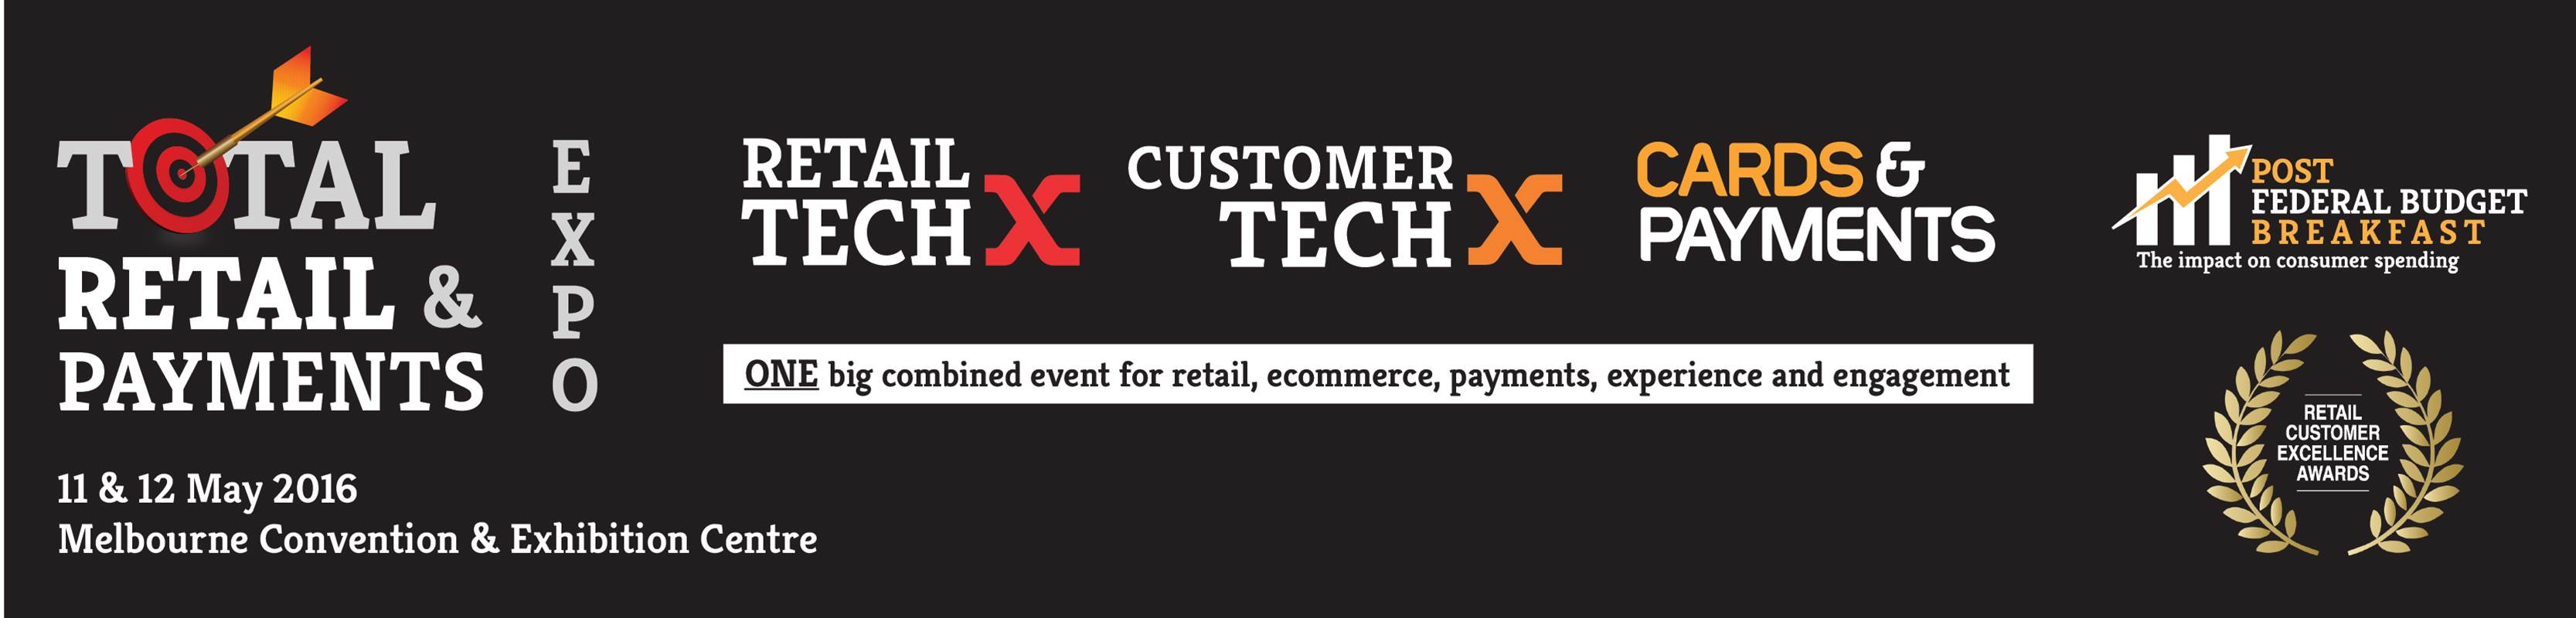 TOTAL Retail & Payments EXPO